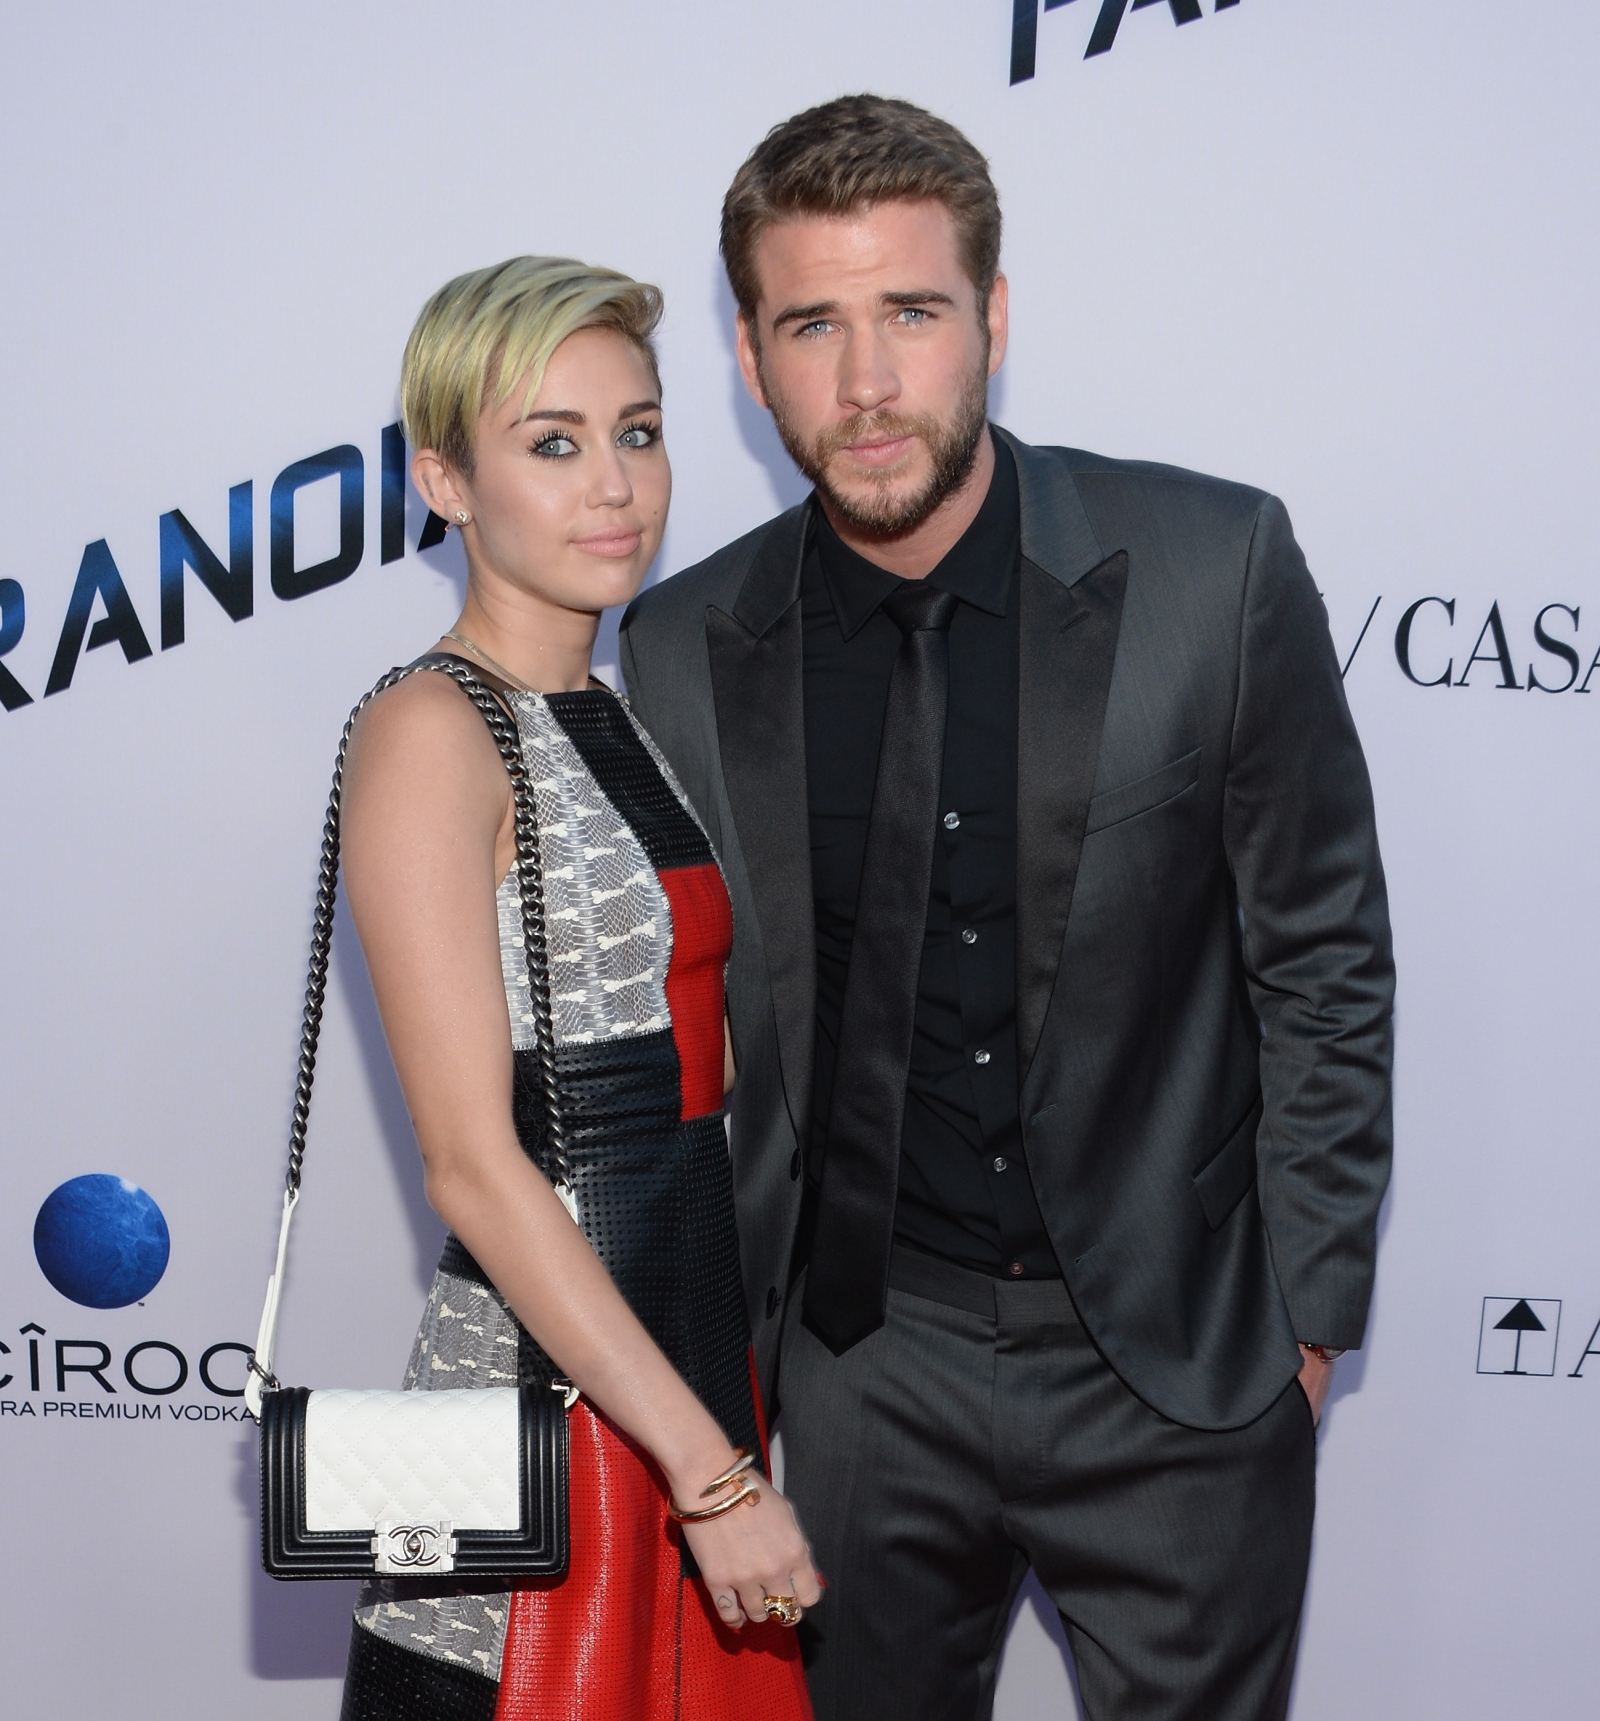 are miley cyrus and liam hemsworth still dating